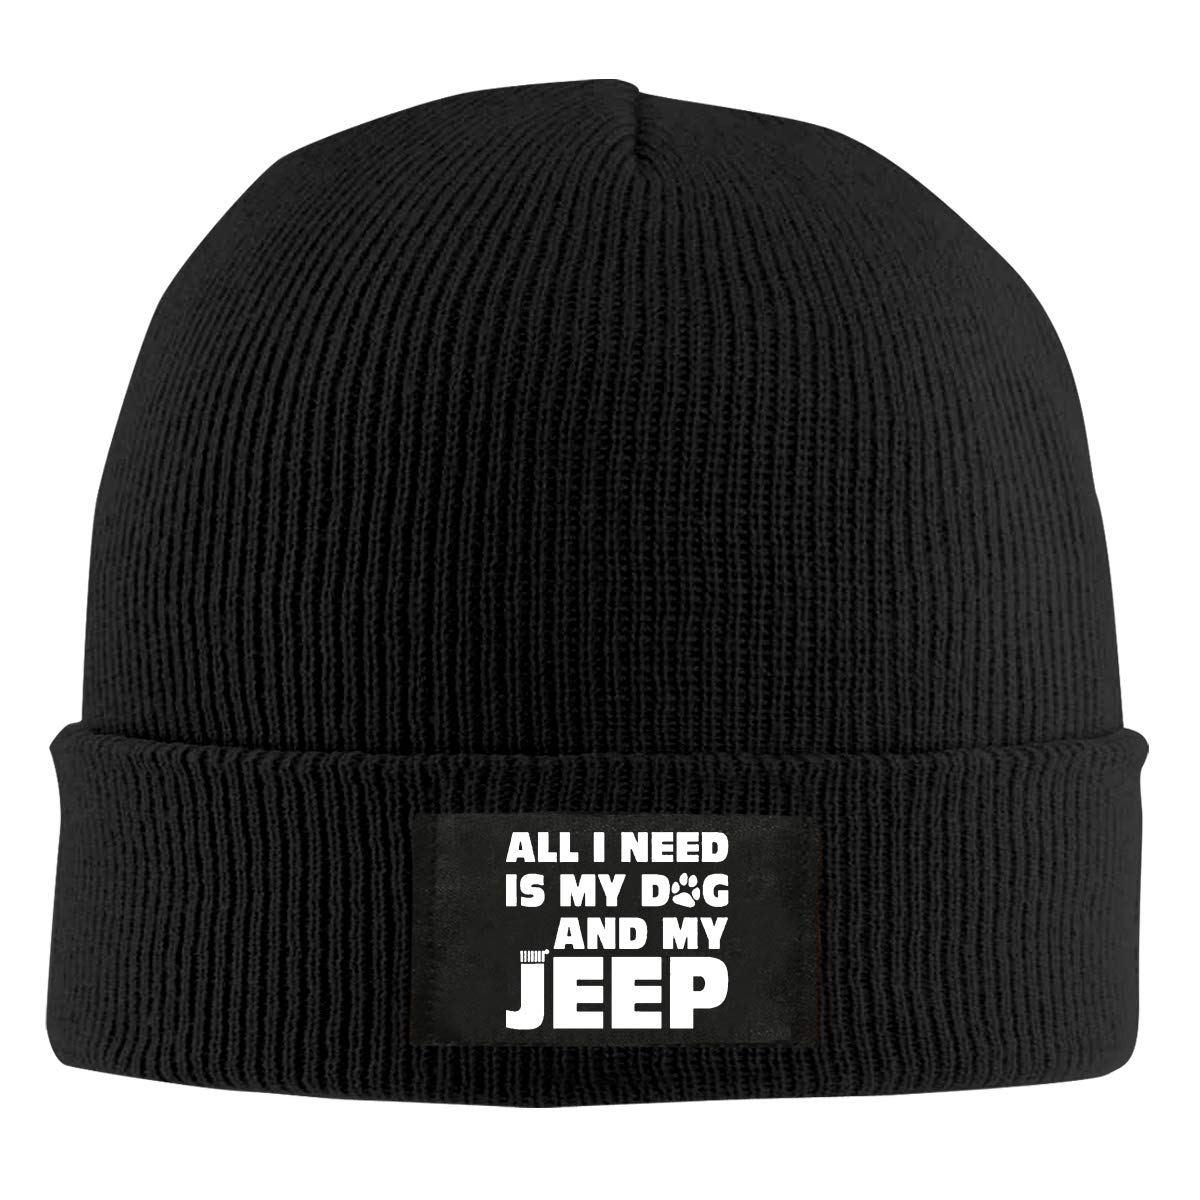 All I Need is My Dog and My Jeep Unisex Warm Winter Hat Knit Beanie Skull Cap Cuff Beanie Hat Winter Hats